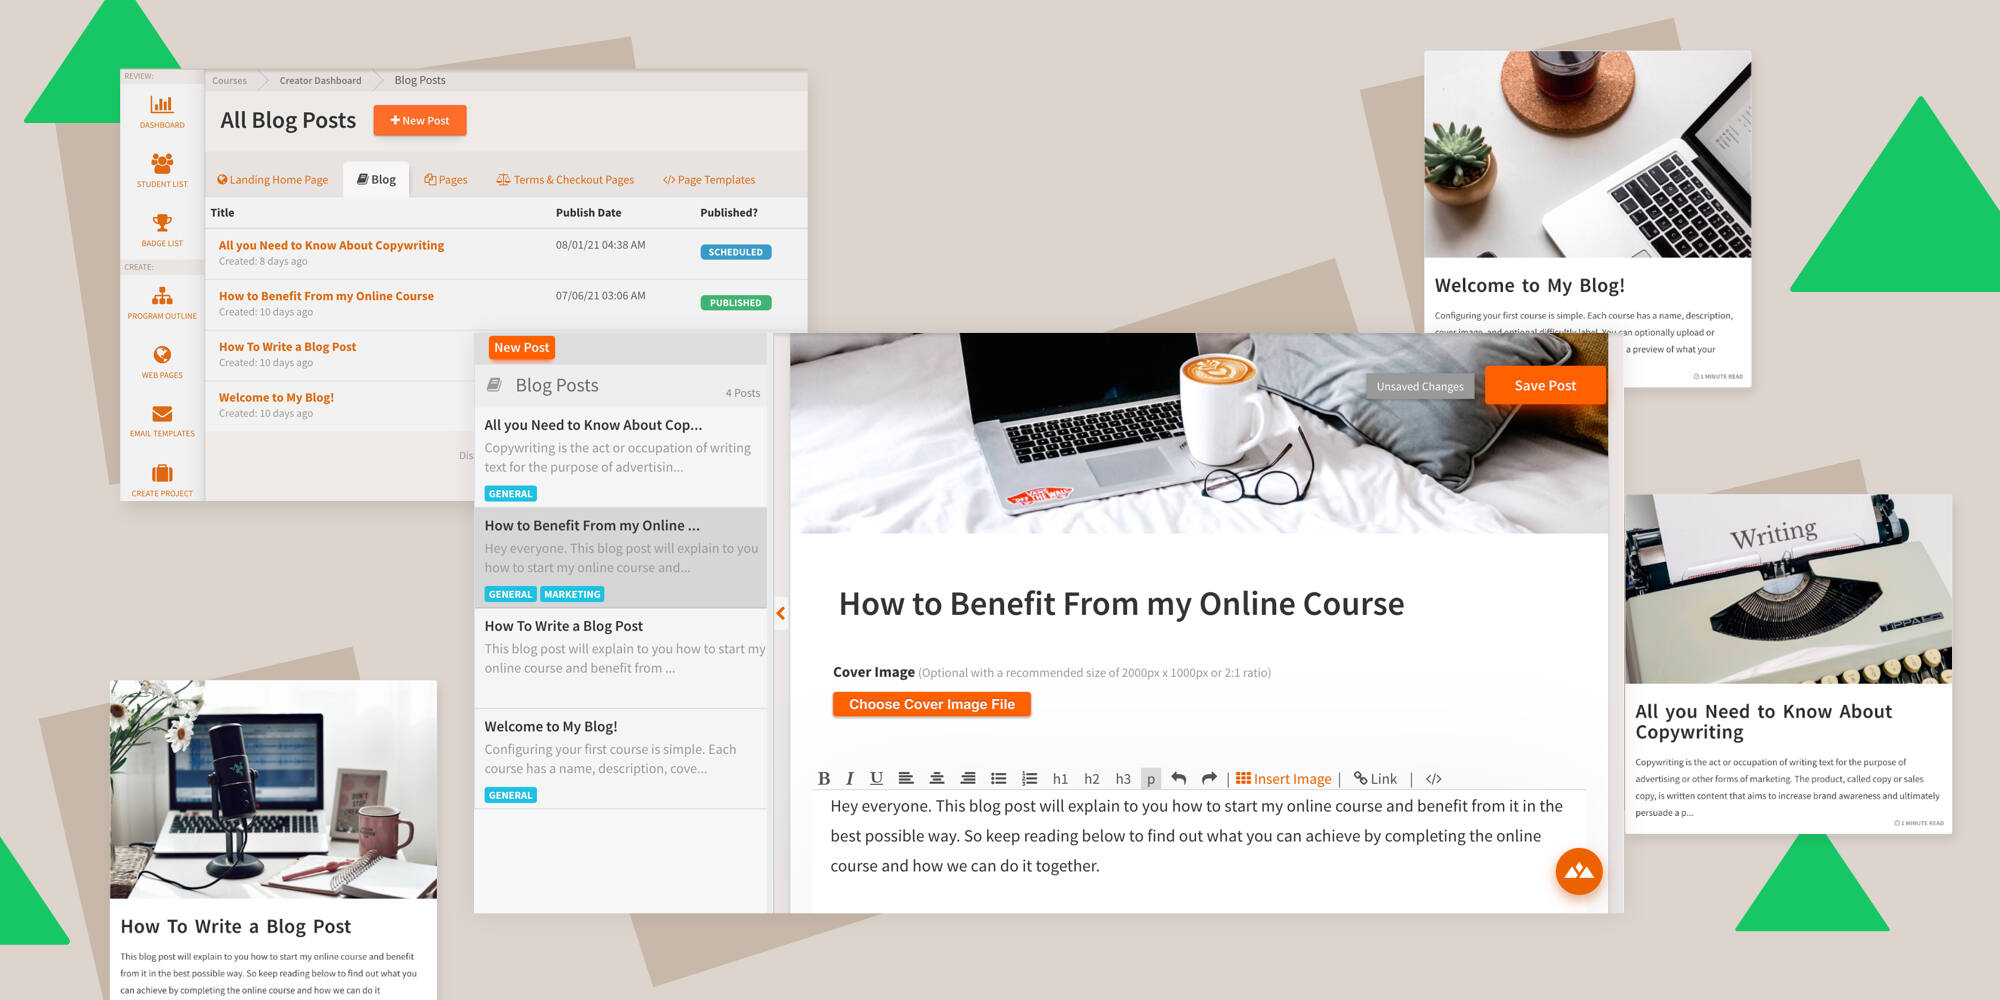 Heights Platform Why You Should Start a Blog to Promote Your Online Course Business